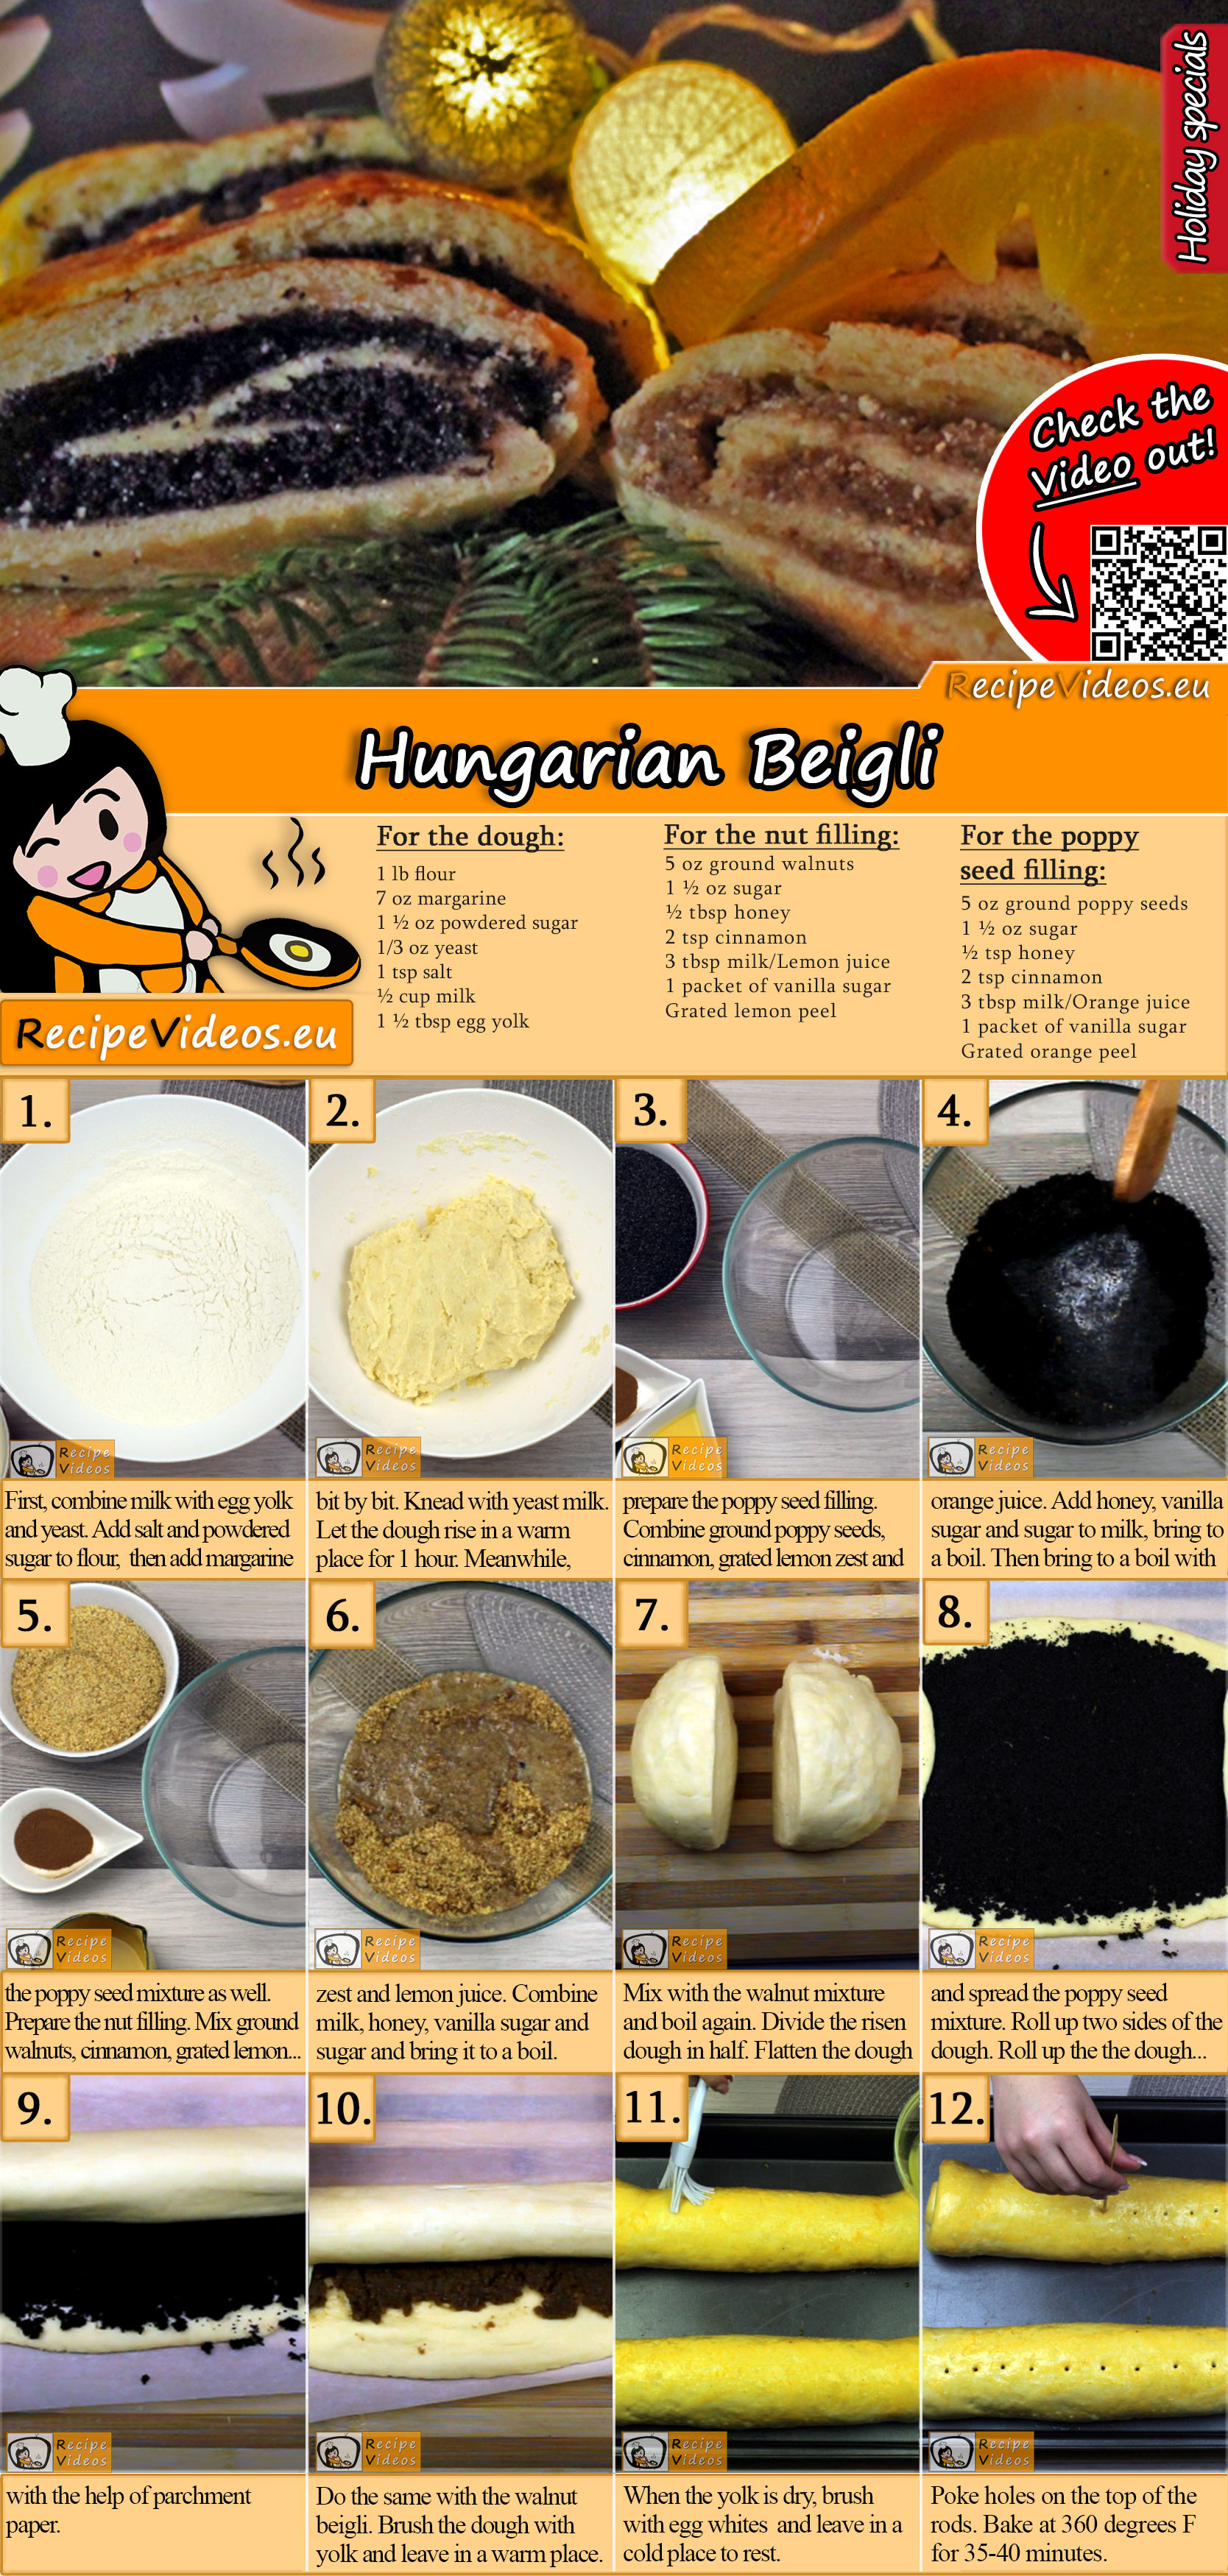 Beigli recipe with video